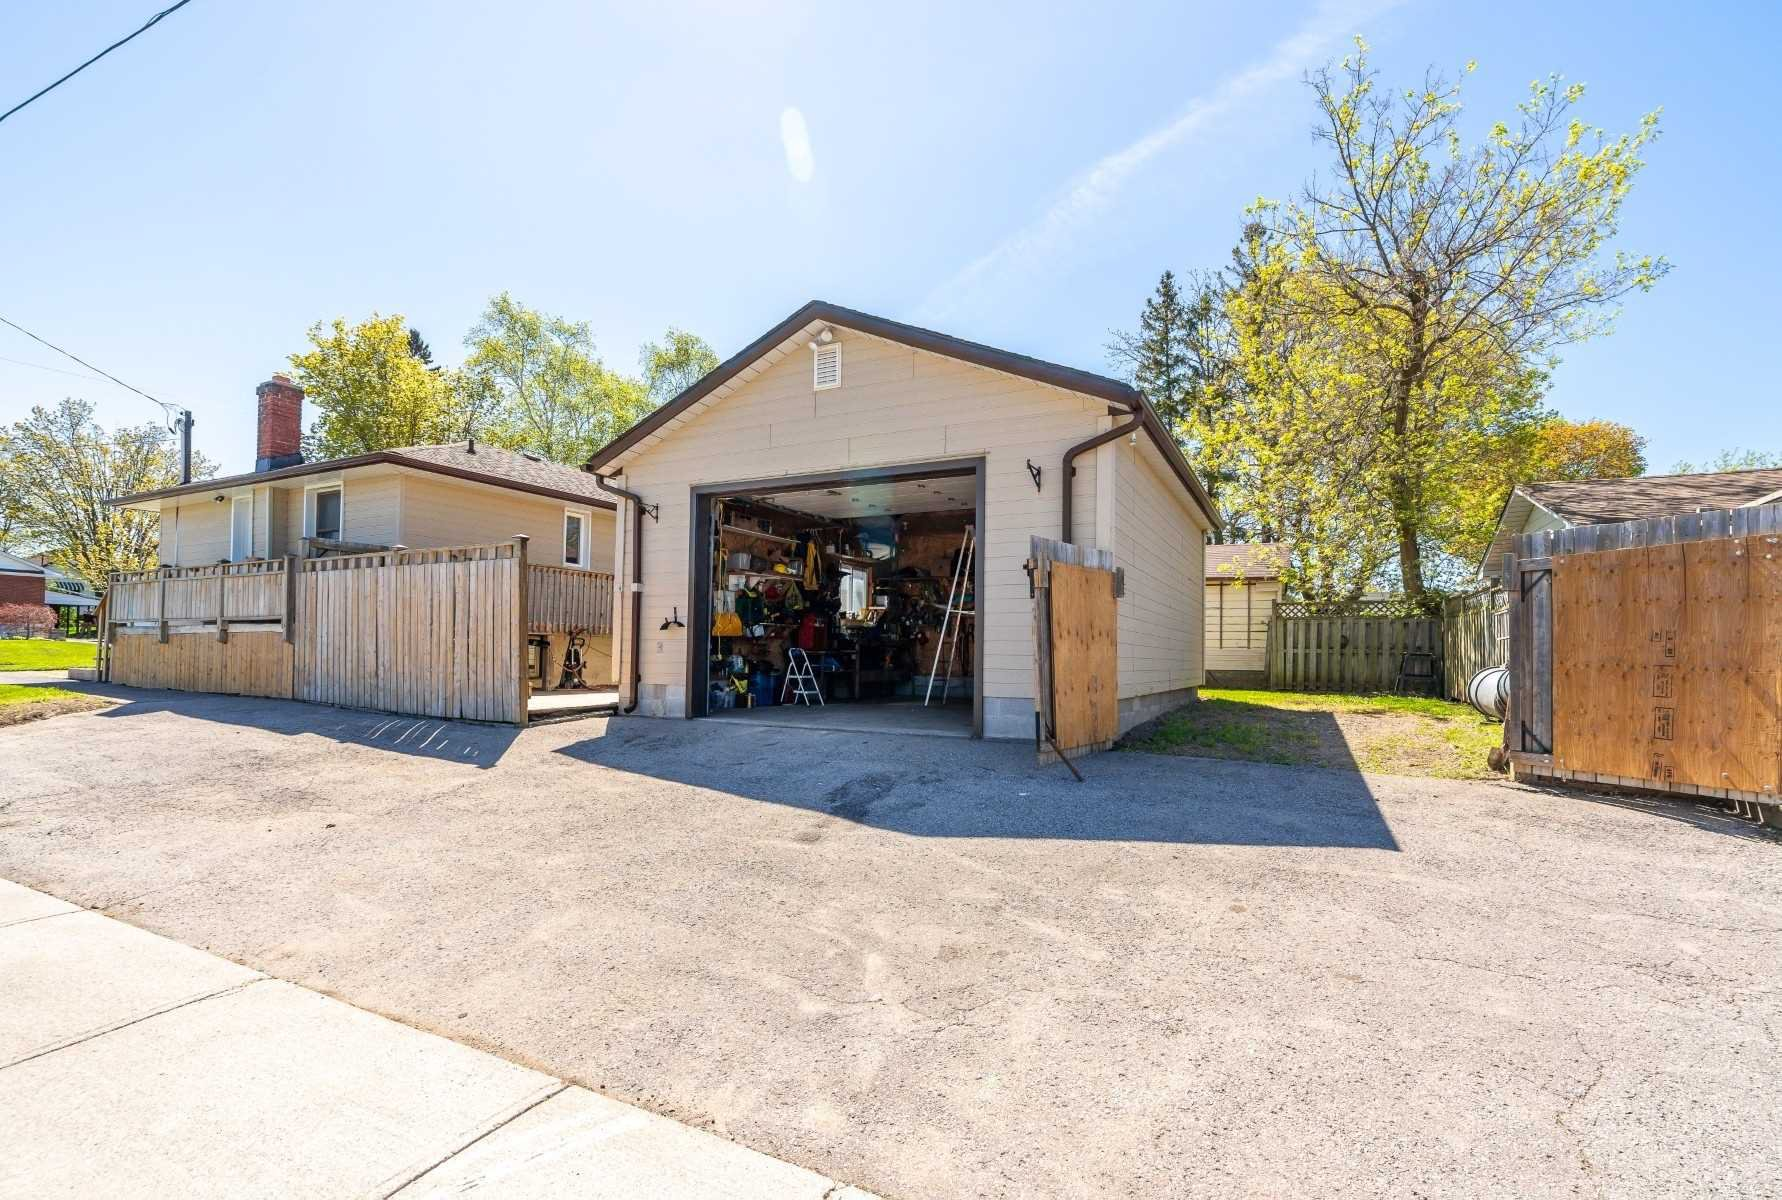 Photo 4: Photos: 40 Eastlawn Street in Oshawa: Donevan House (Bungalow) for sale : MLS®# E4769026